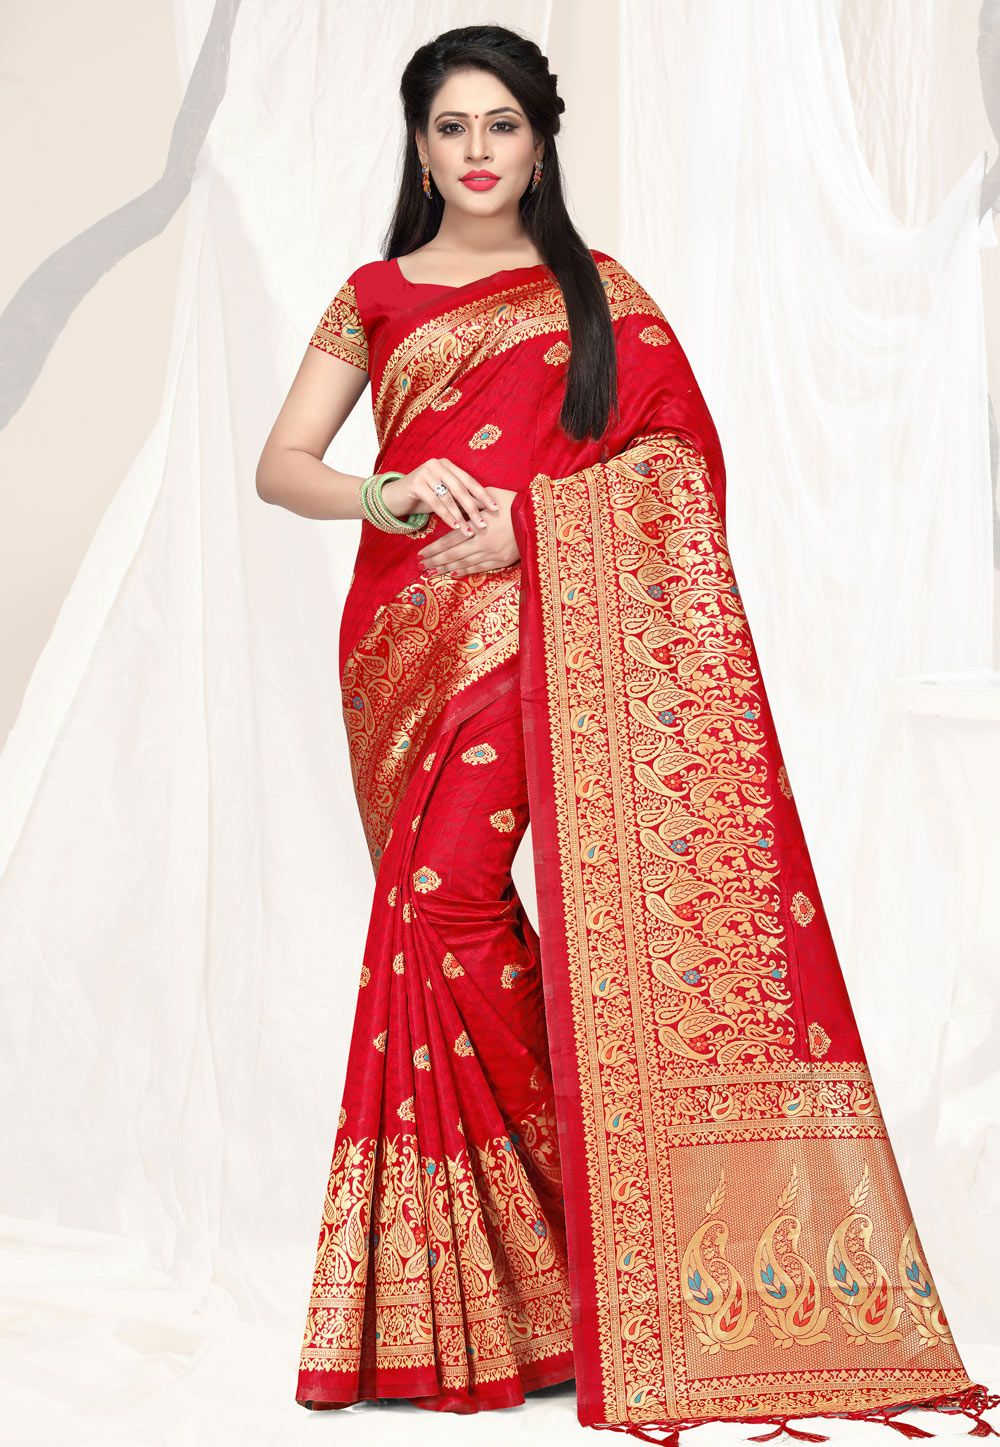 39c9db3cb3e1c Buy Red Banarasi Silk Festival Wear Saree 161857 with blouse online at  lowest price from vast collection of sarees at Indianclothstore.com.